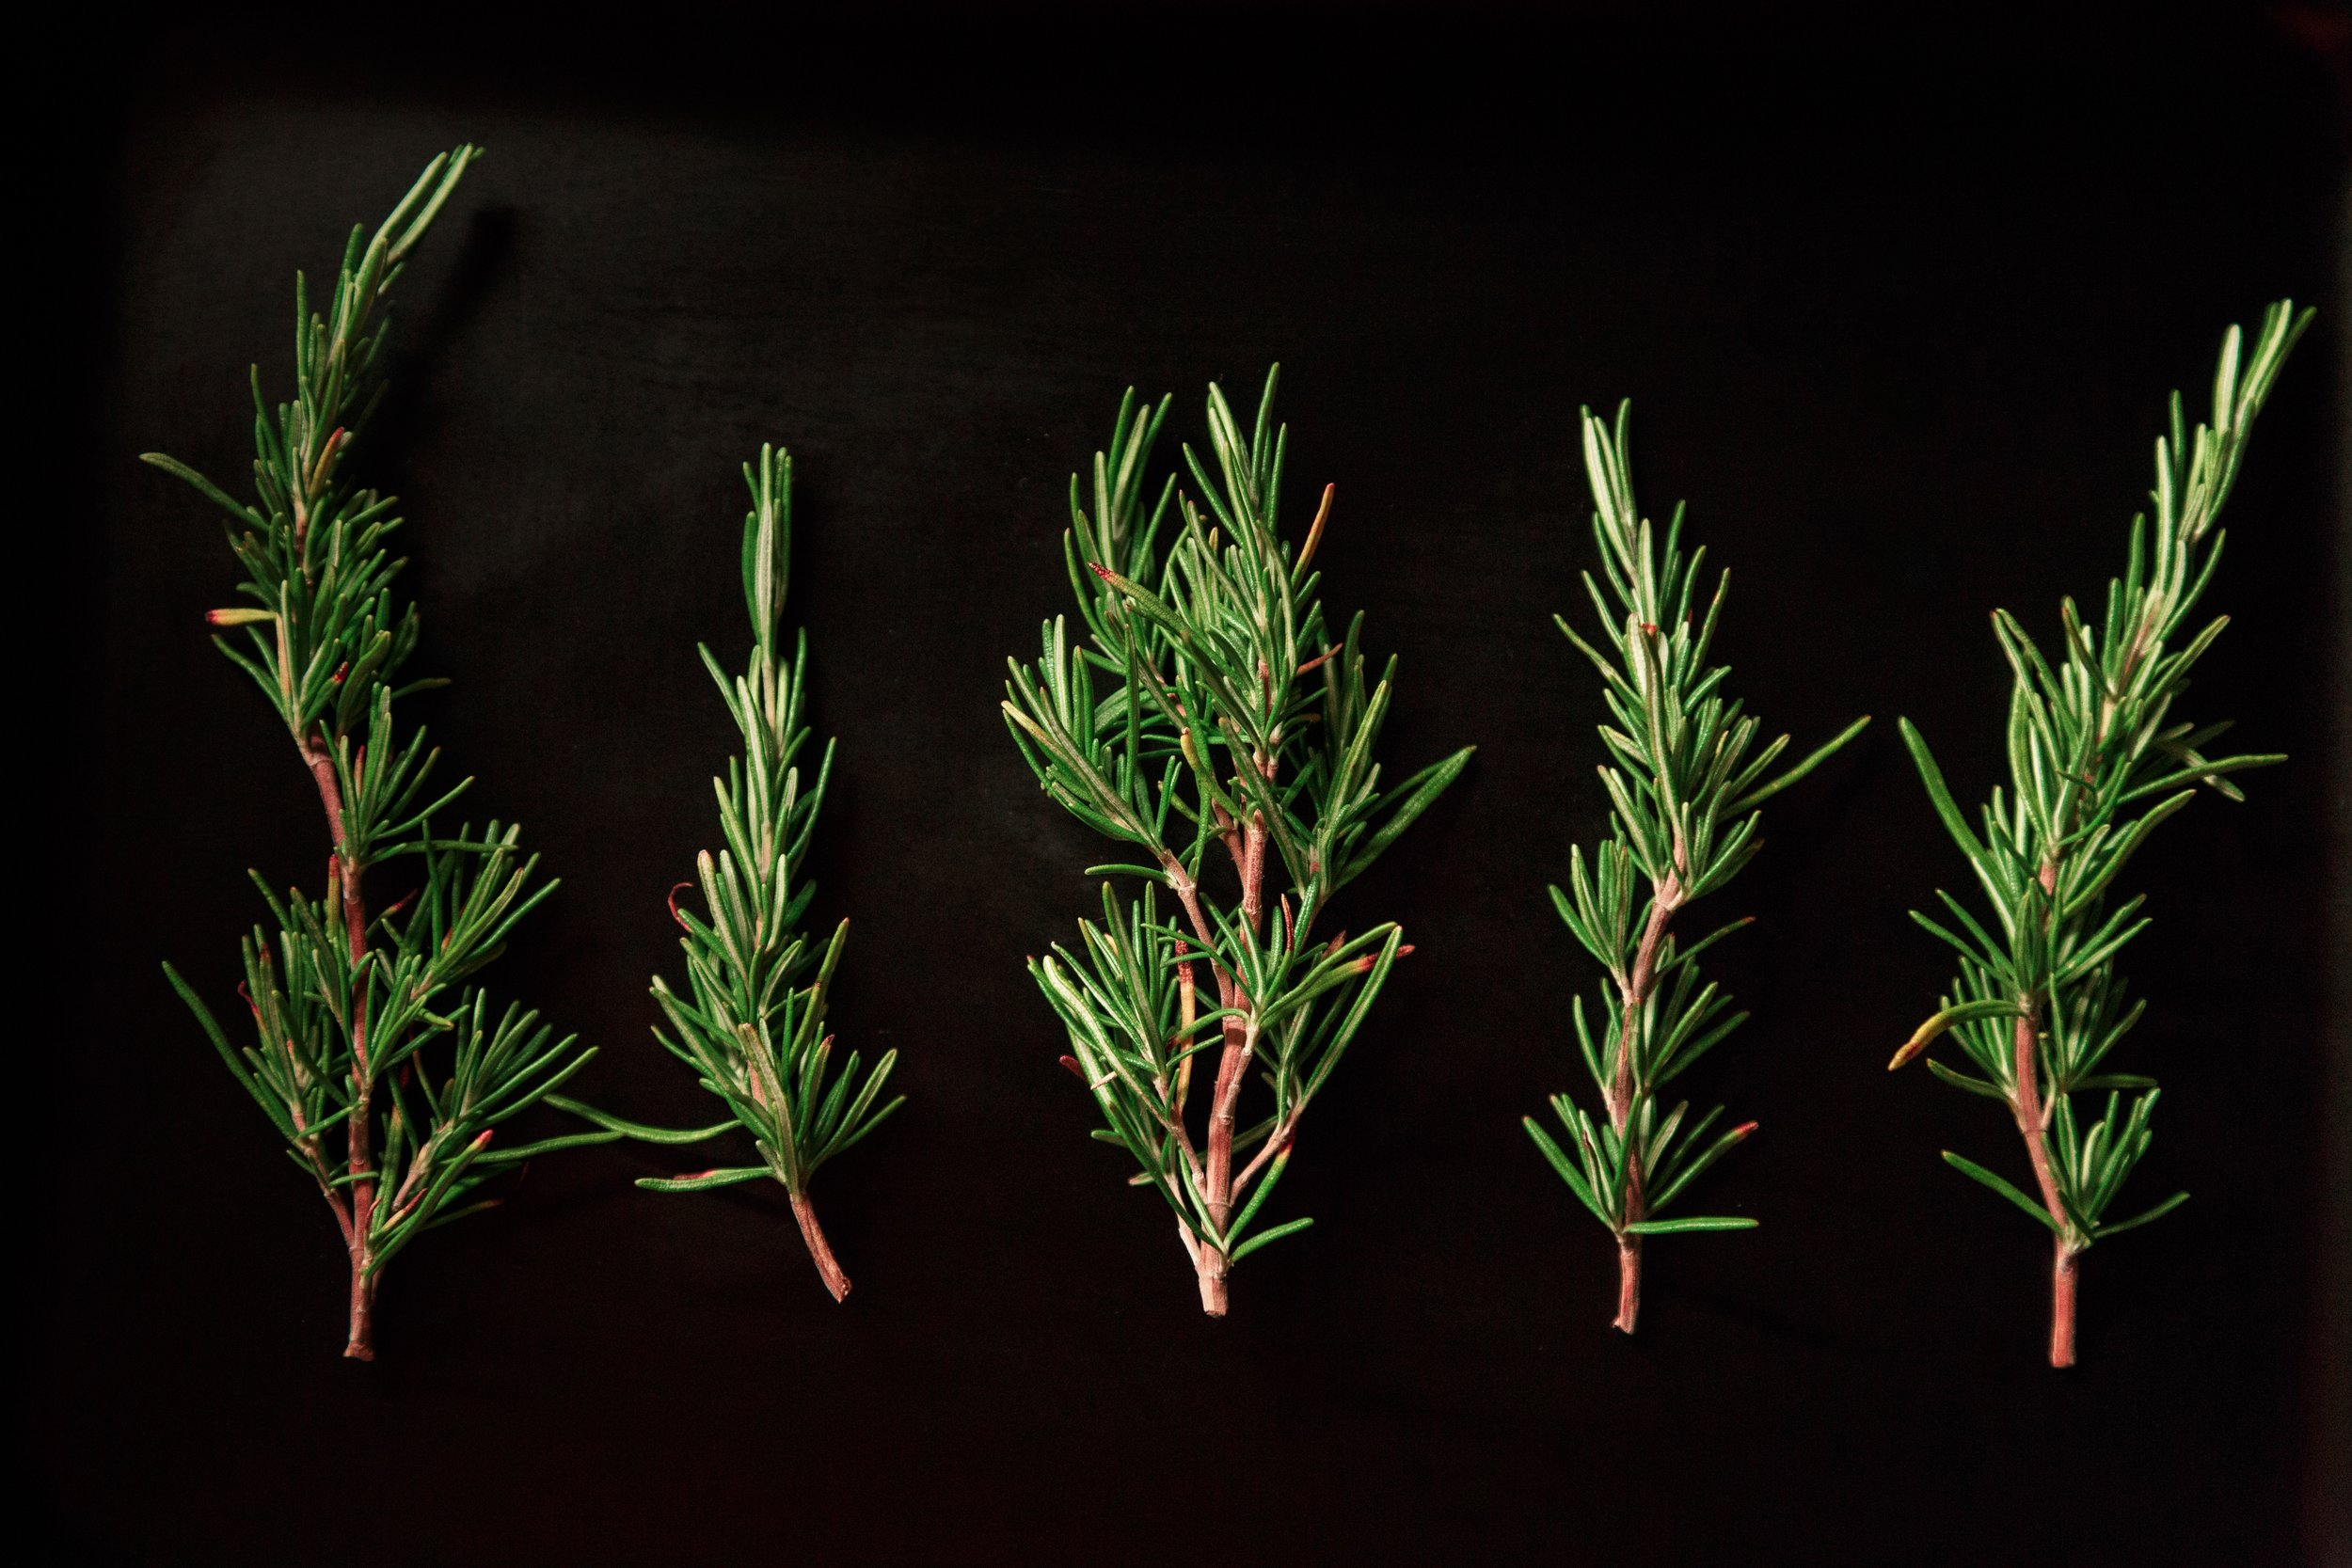 A study conducted by the  Egyptian Journal of Basic and Applied Science  found that inhaling the scent of rosemary increased productivity and improved visual and numerical memory.